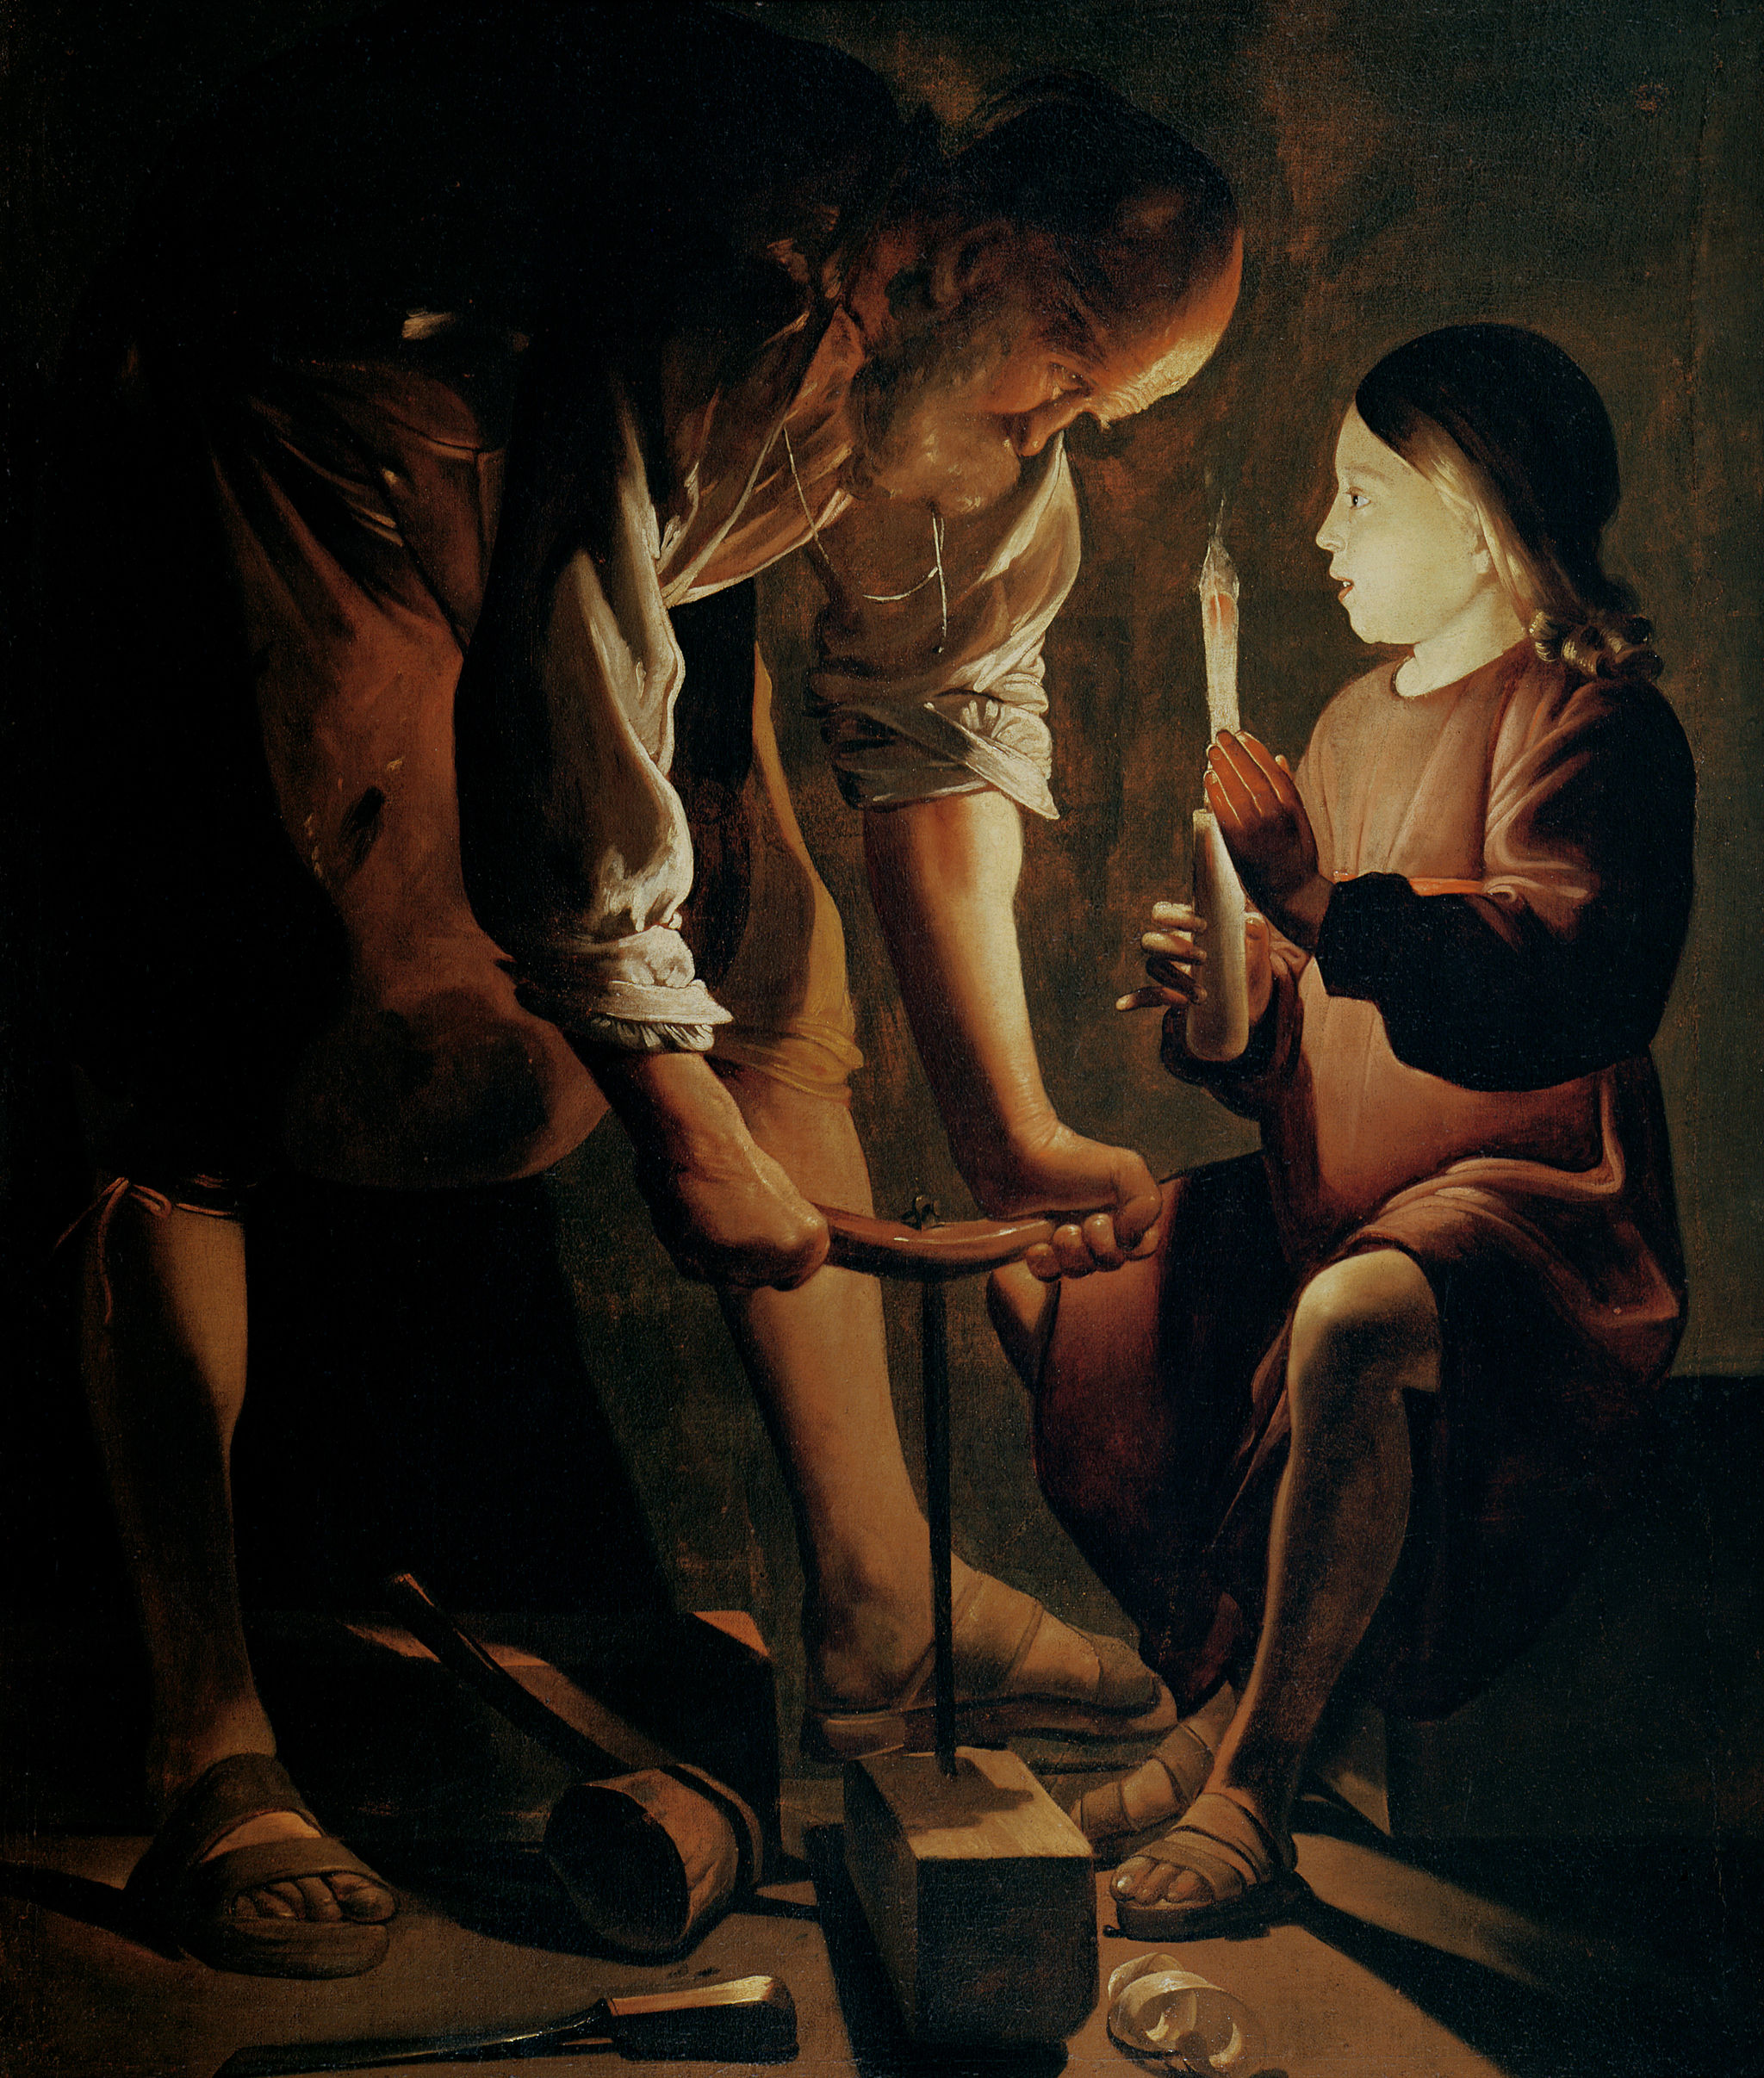 Joseph the Carpenter - Painting of an old man (Saint Joseph) and child holding a candle